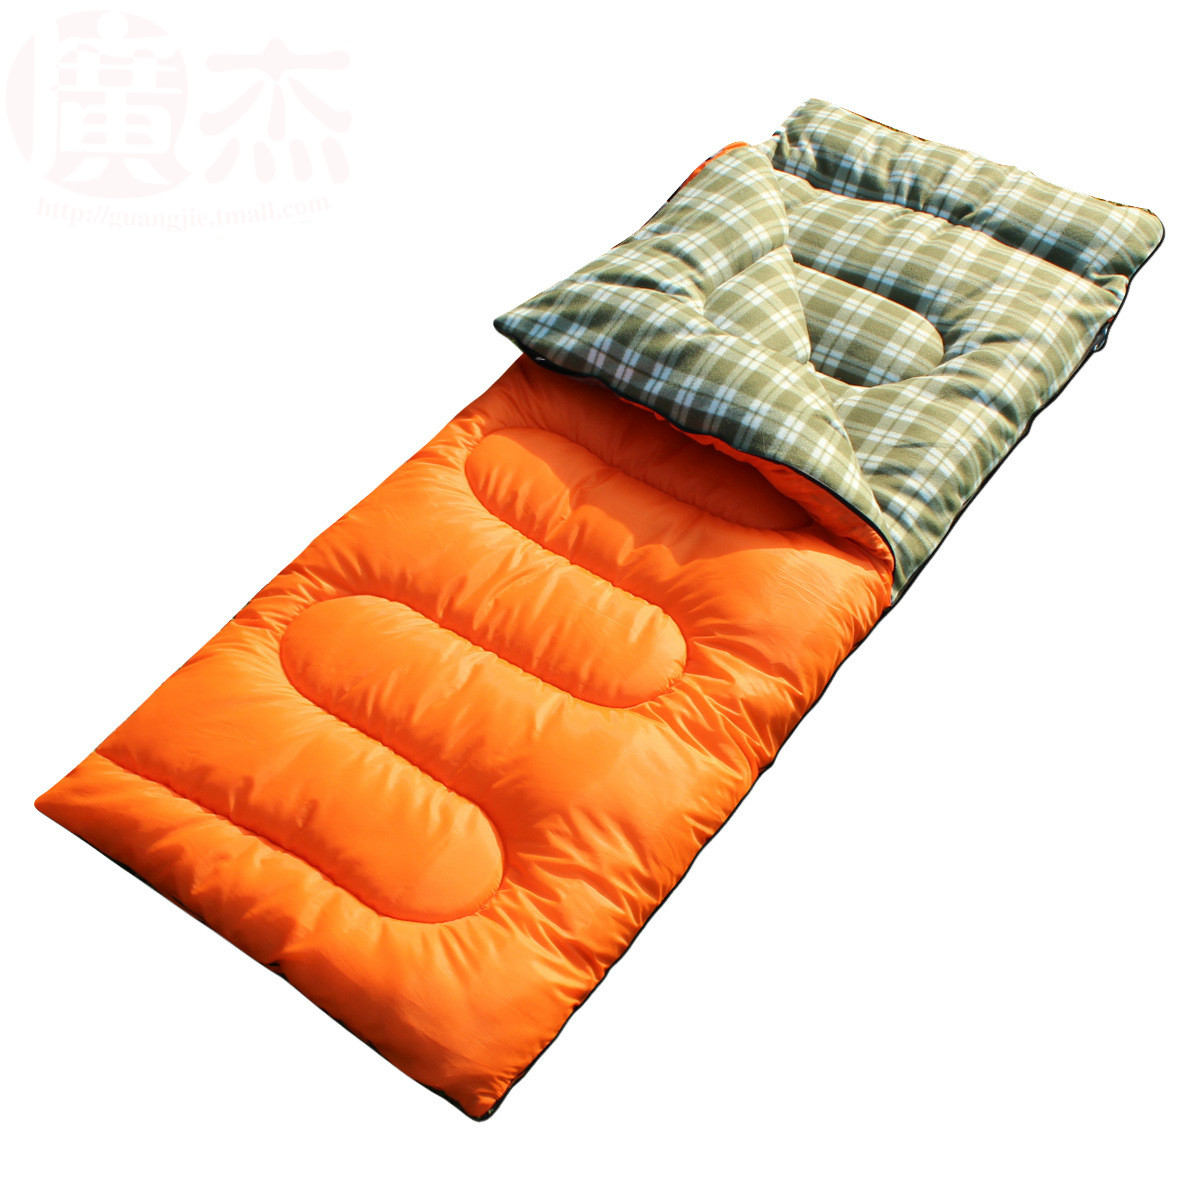 Outdoor camping sleeping bag spring summer autumn three season envelope sleeping bag can be splicing adult sleeping bag new brand envelop outdoor couple lover family camping sleeping bag adult three season indoor lunch break sleeping bag 2 1kg